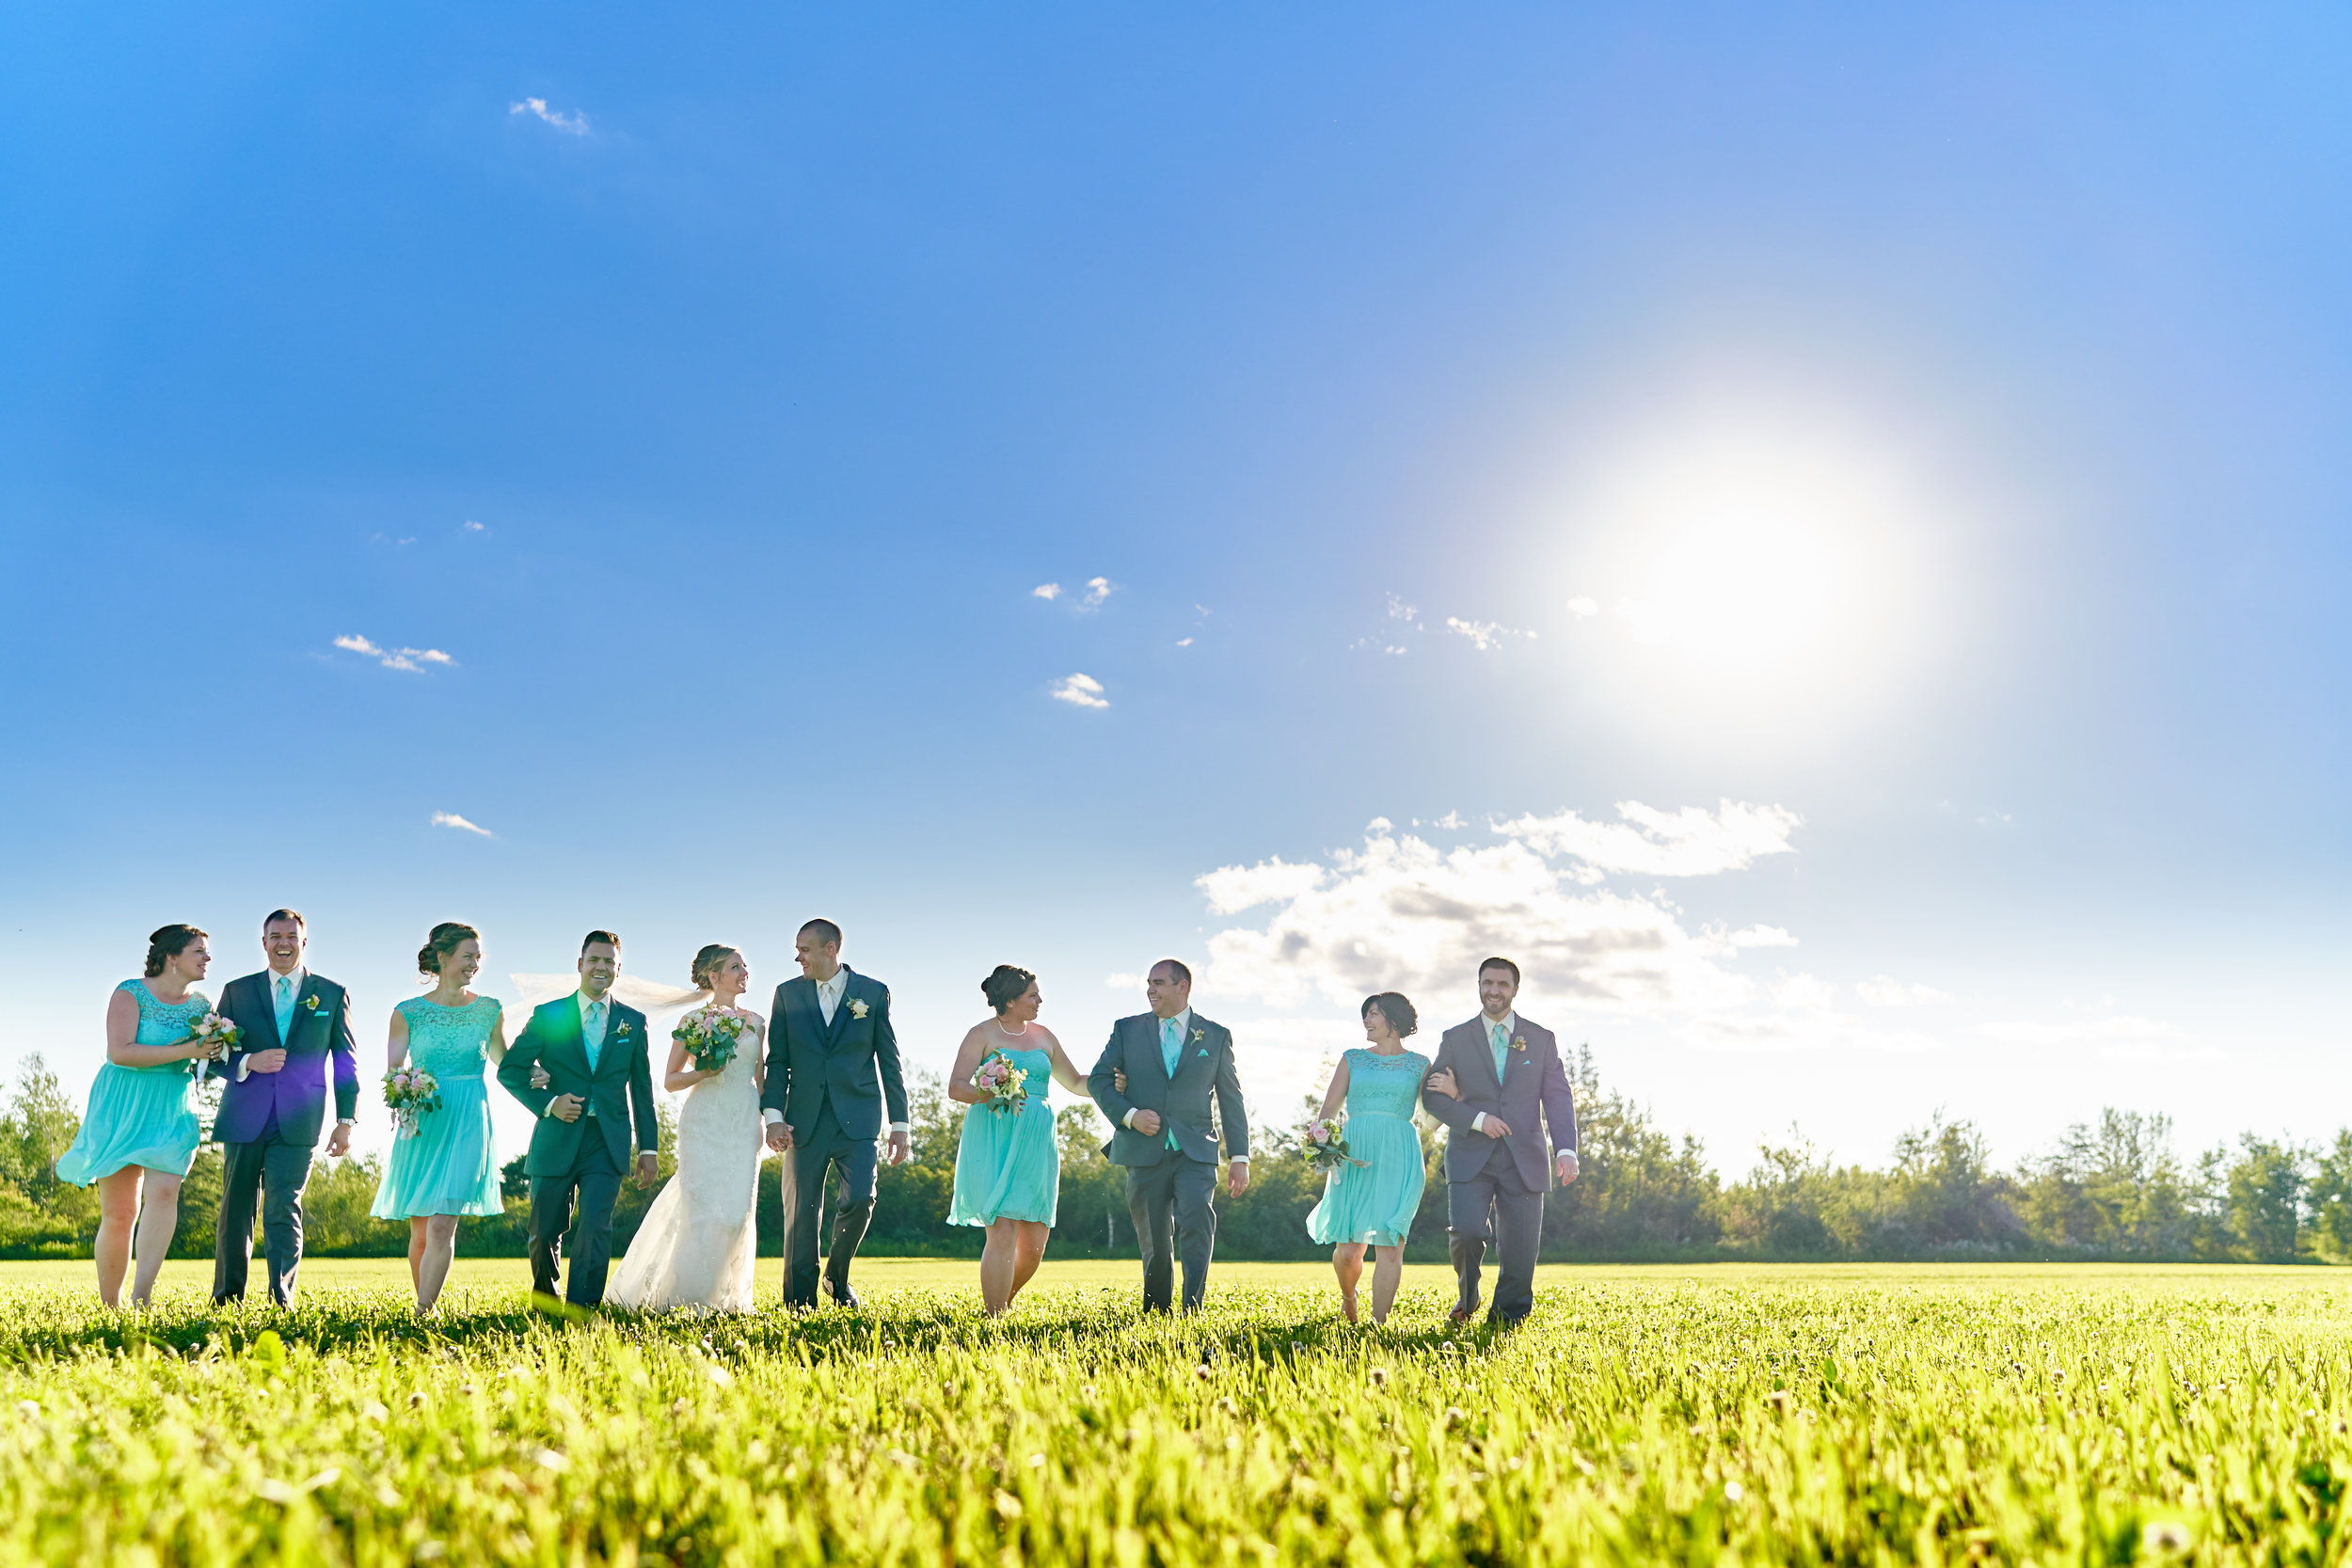 For lots more info specific to your wedding day, click here for my wedding planning page.